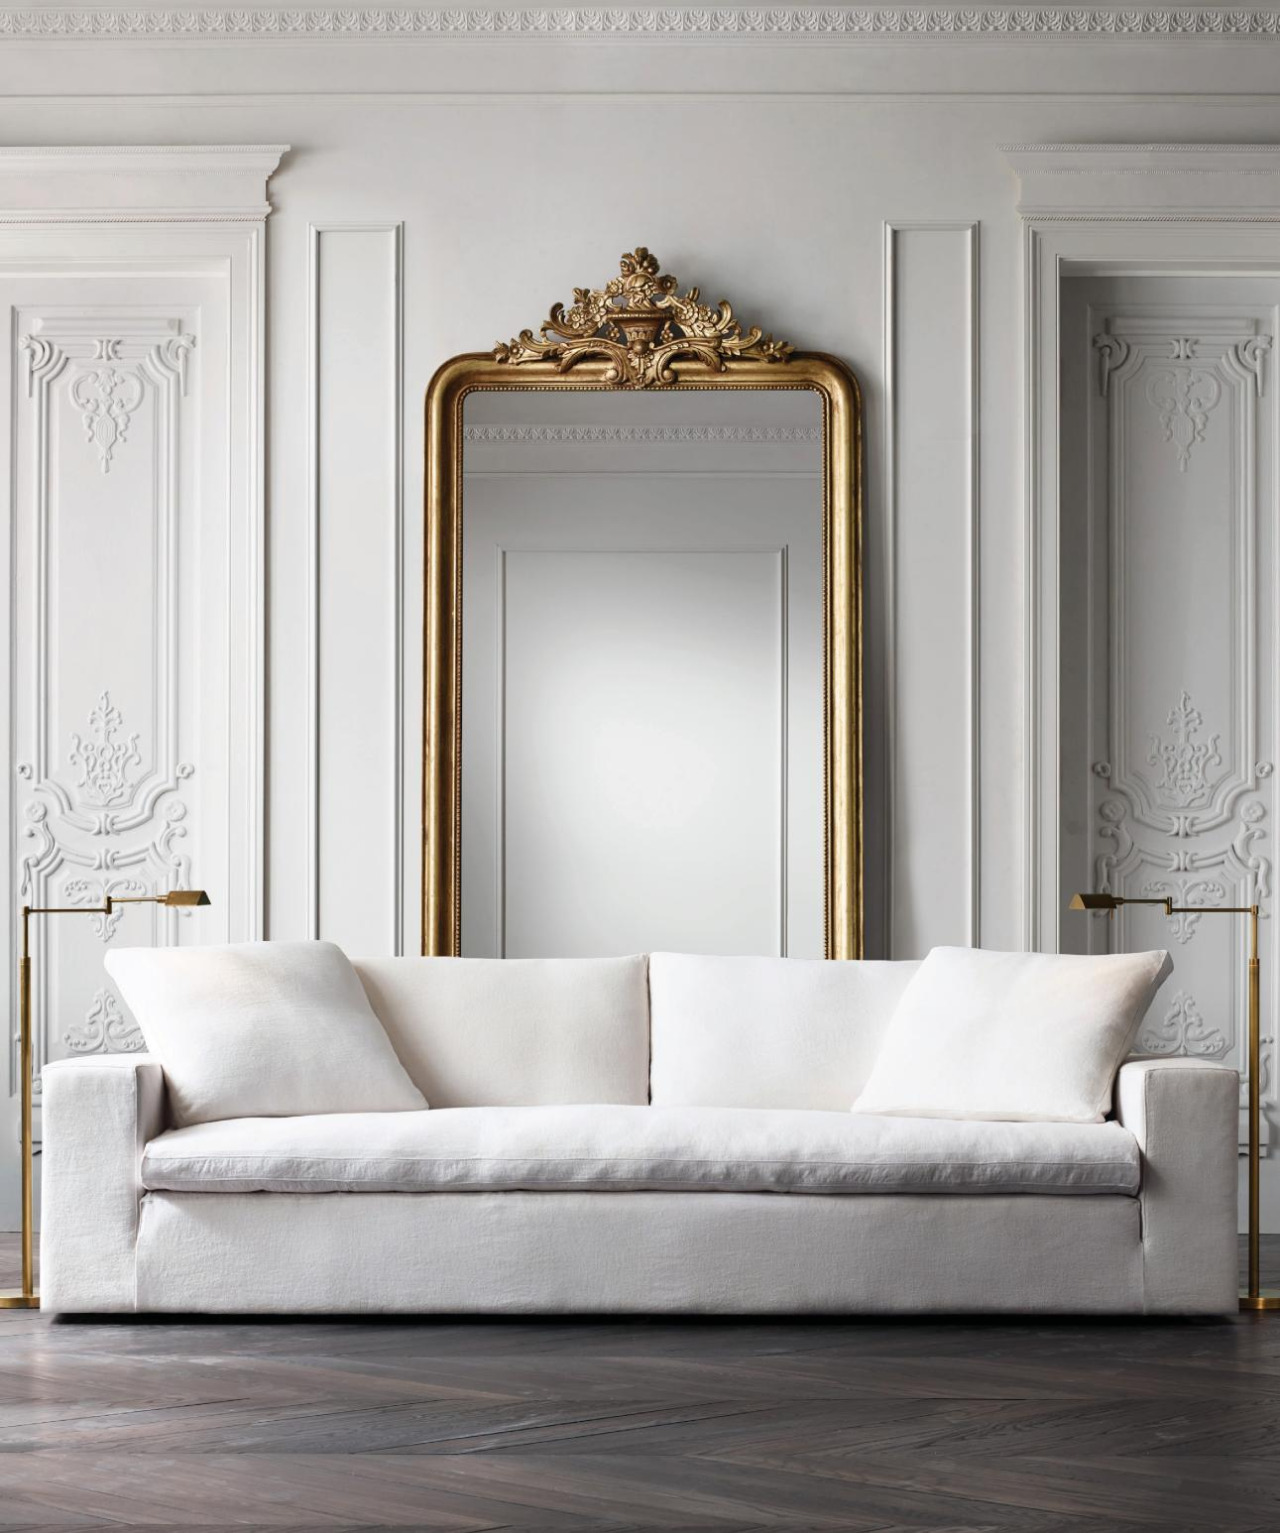 Attirant Stunning Wall Mirror Designs For Your Living Room Decor Wall Mirror Designs  Stunning Wall Mirror Designs